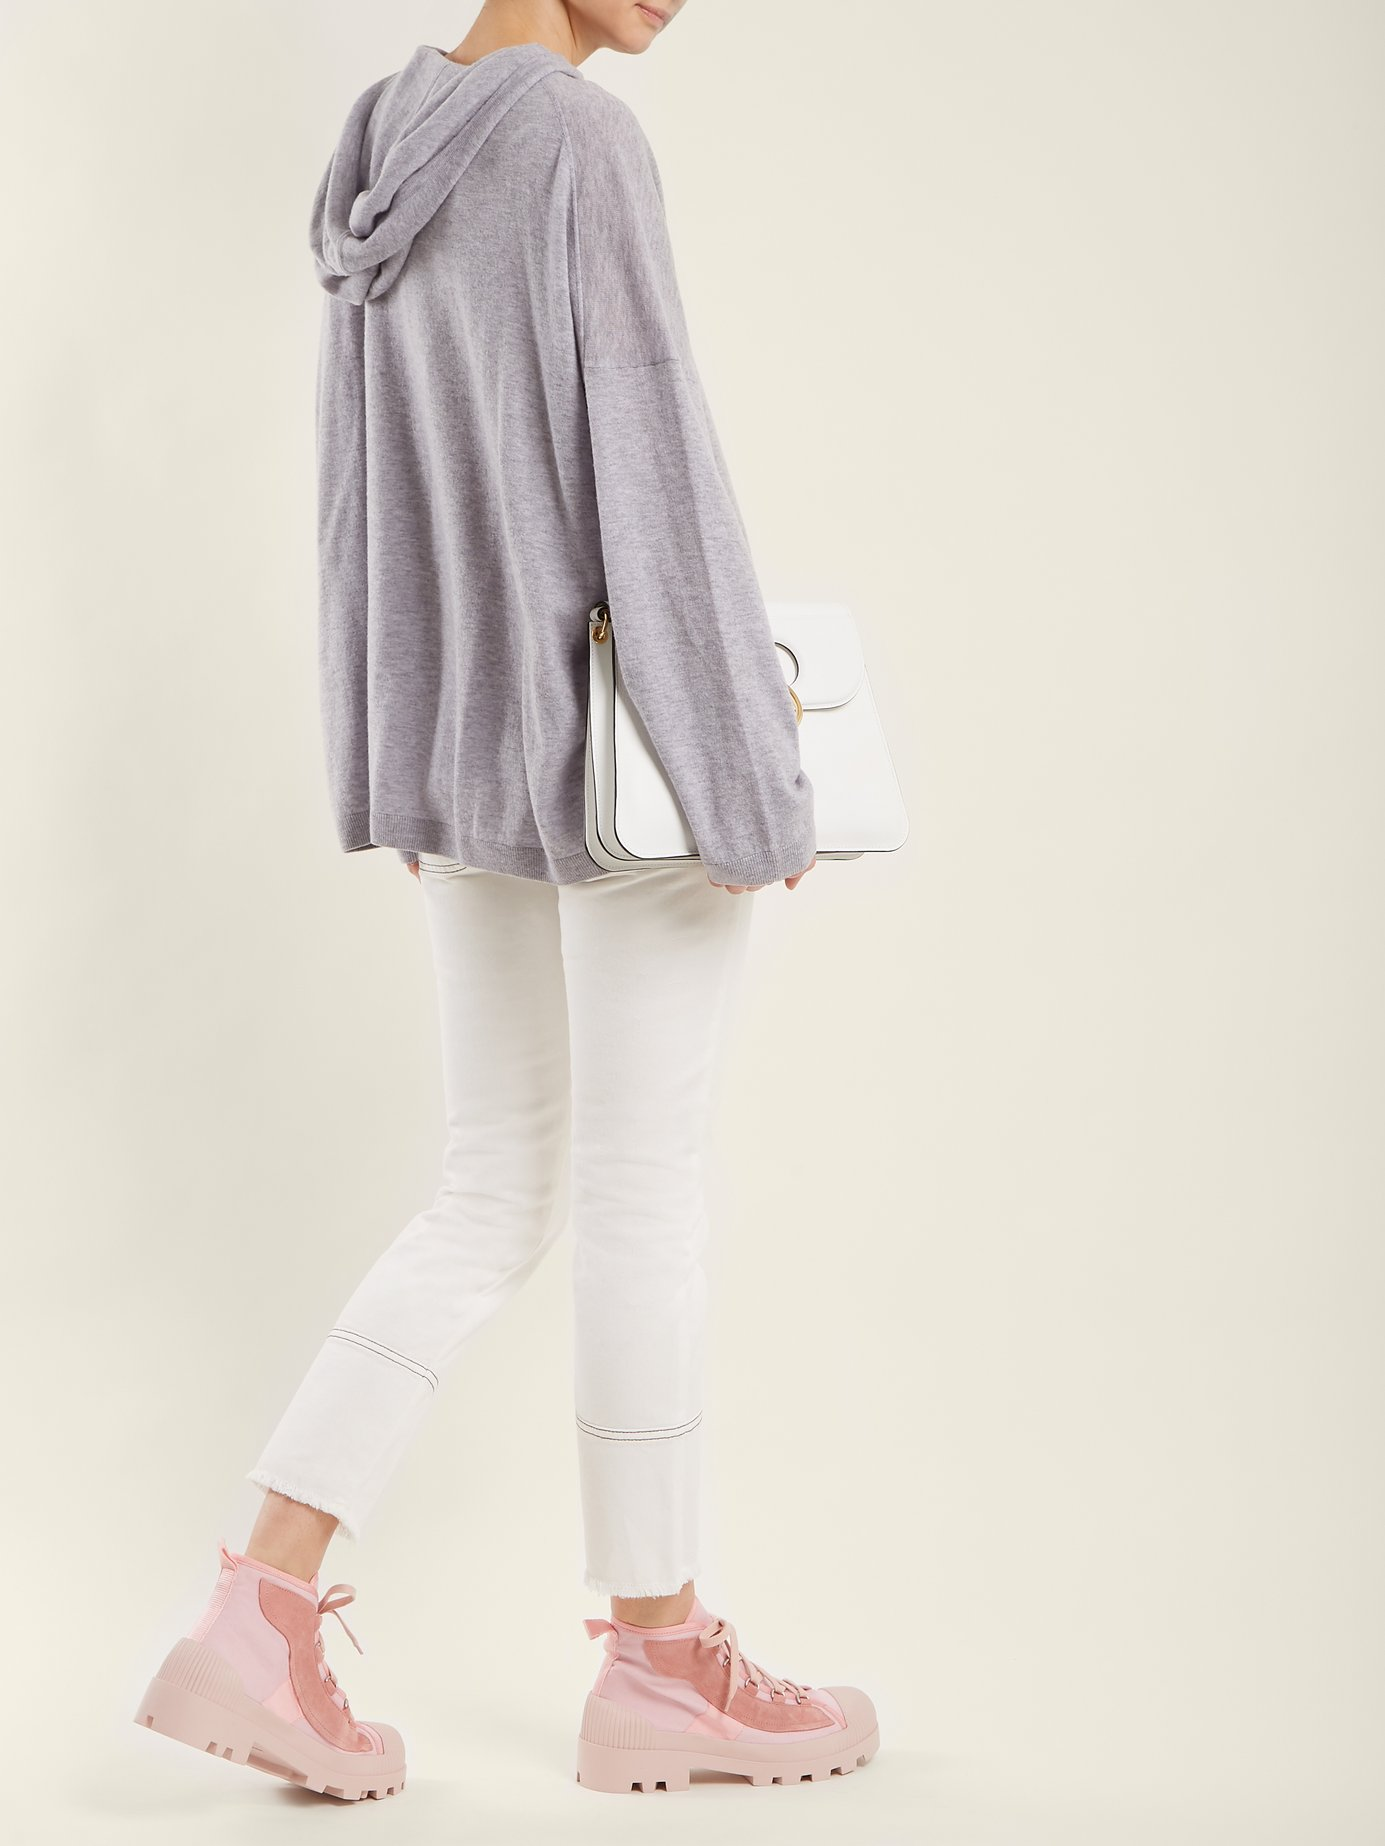 outfit_1186615_1